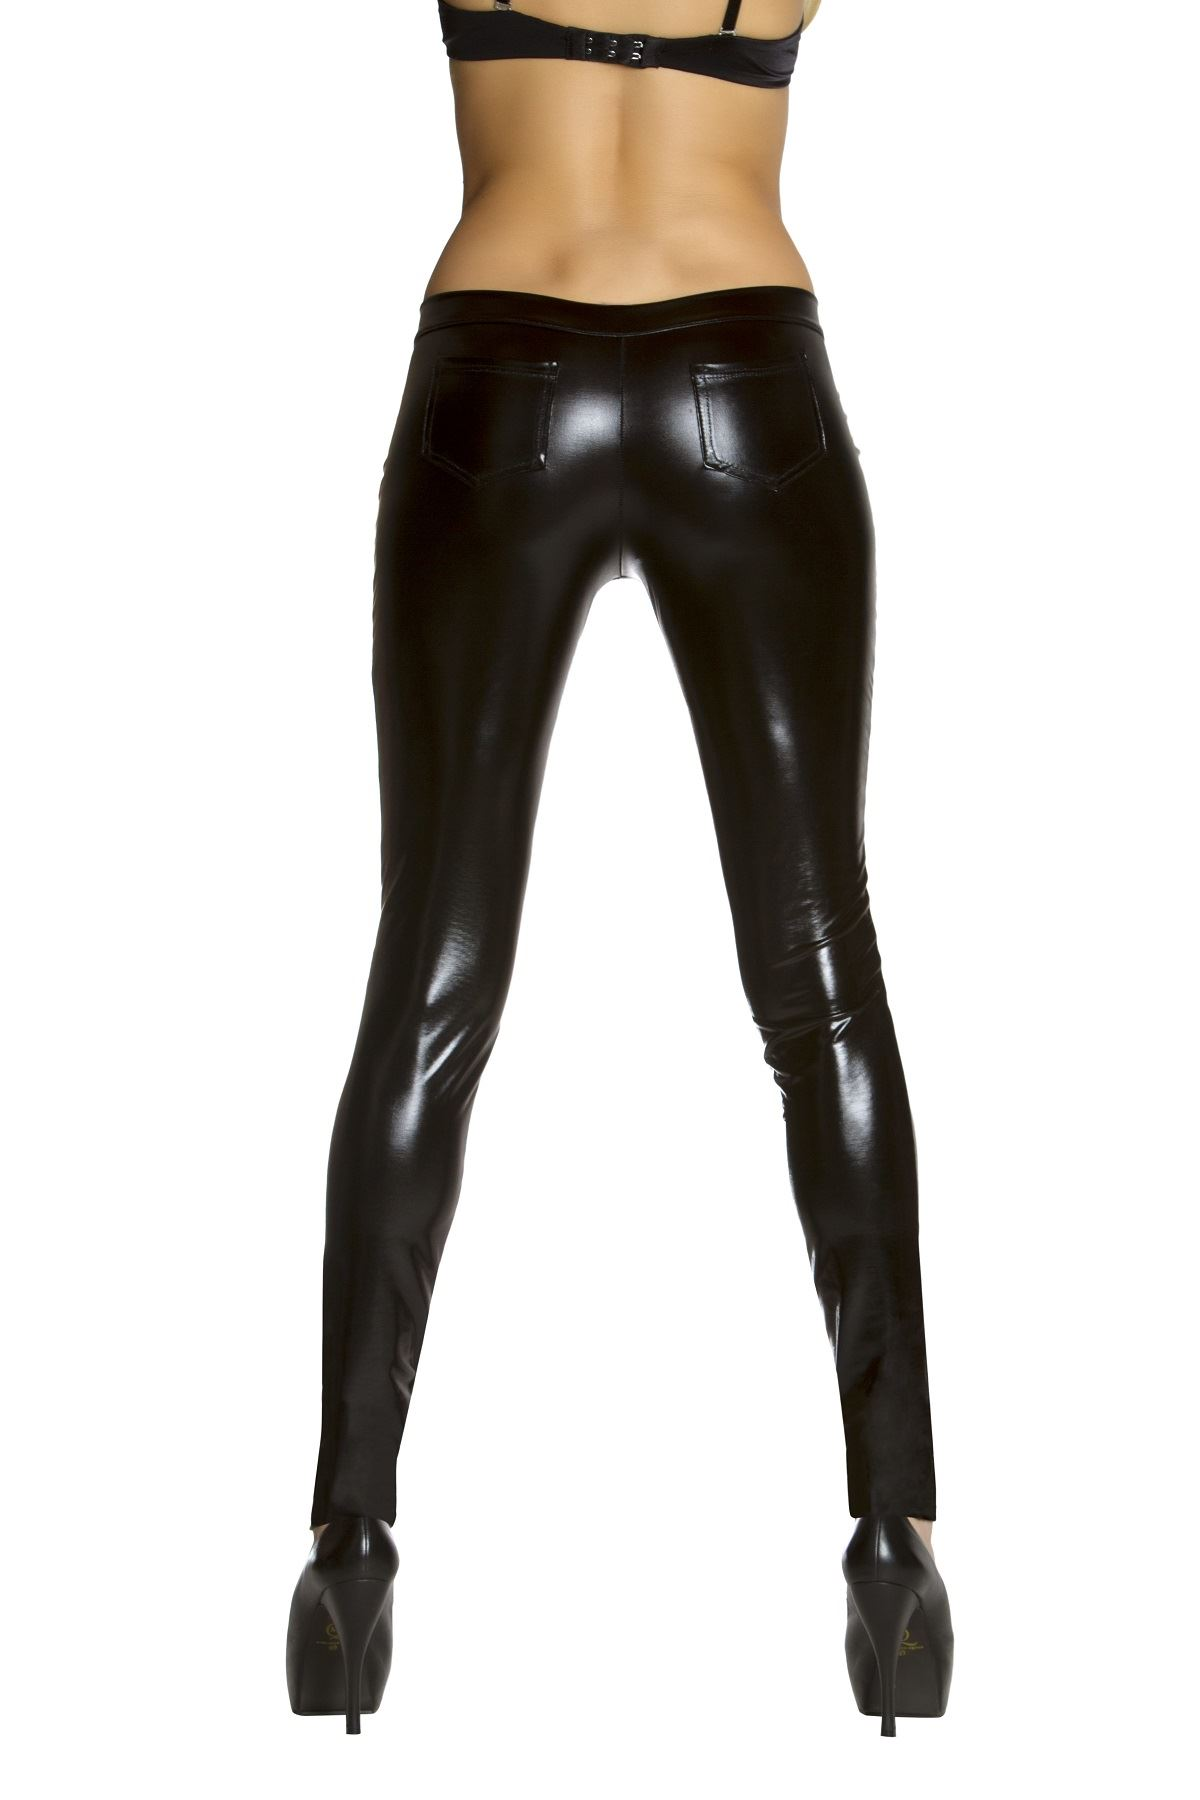 Metallic Pants are available in the color and clothing size that you require. Take a look at a diversity of items made in China. Look for colors like black as well as others.